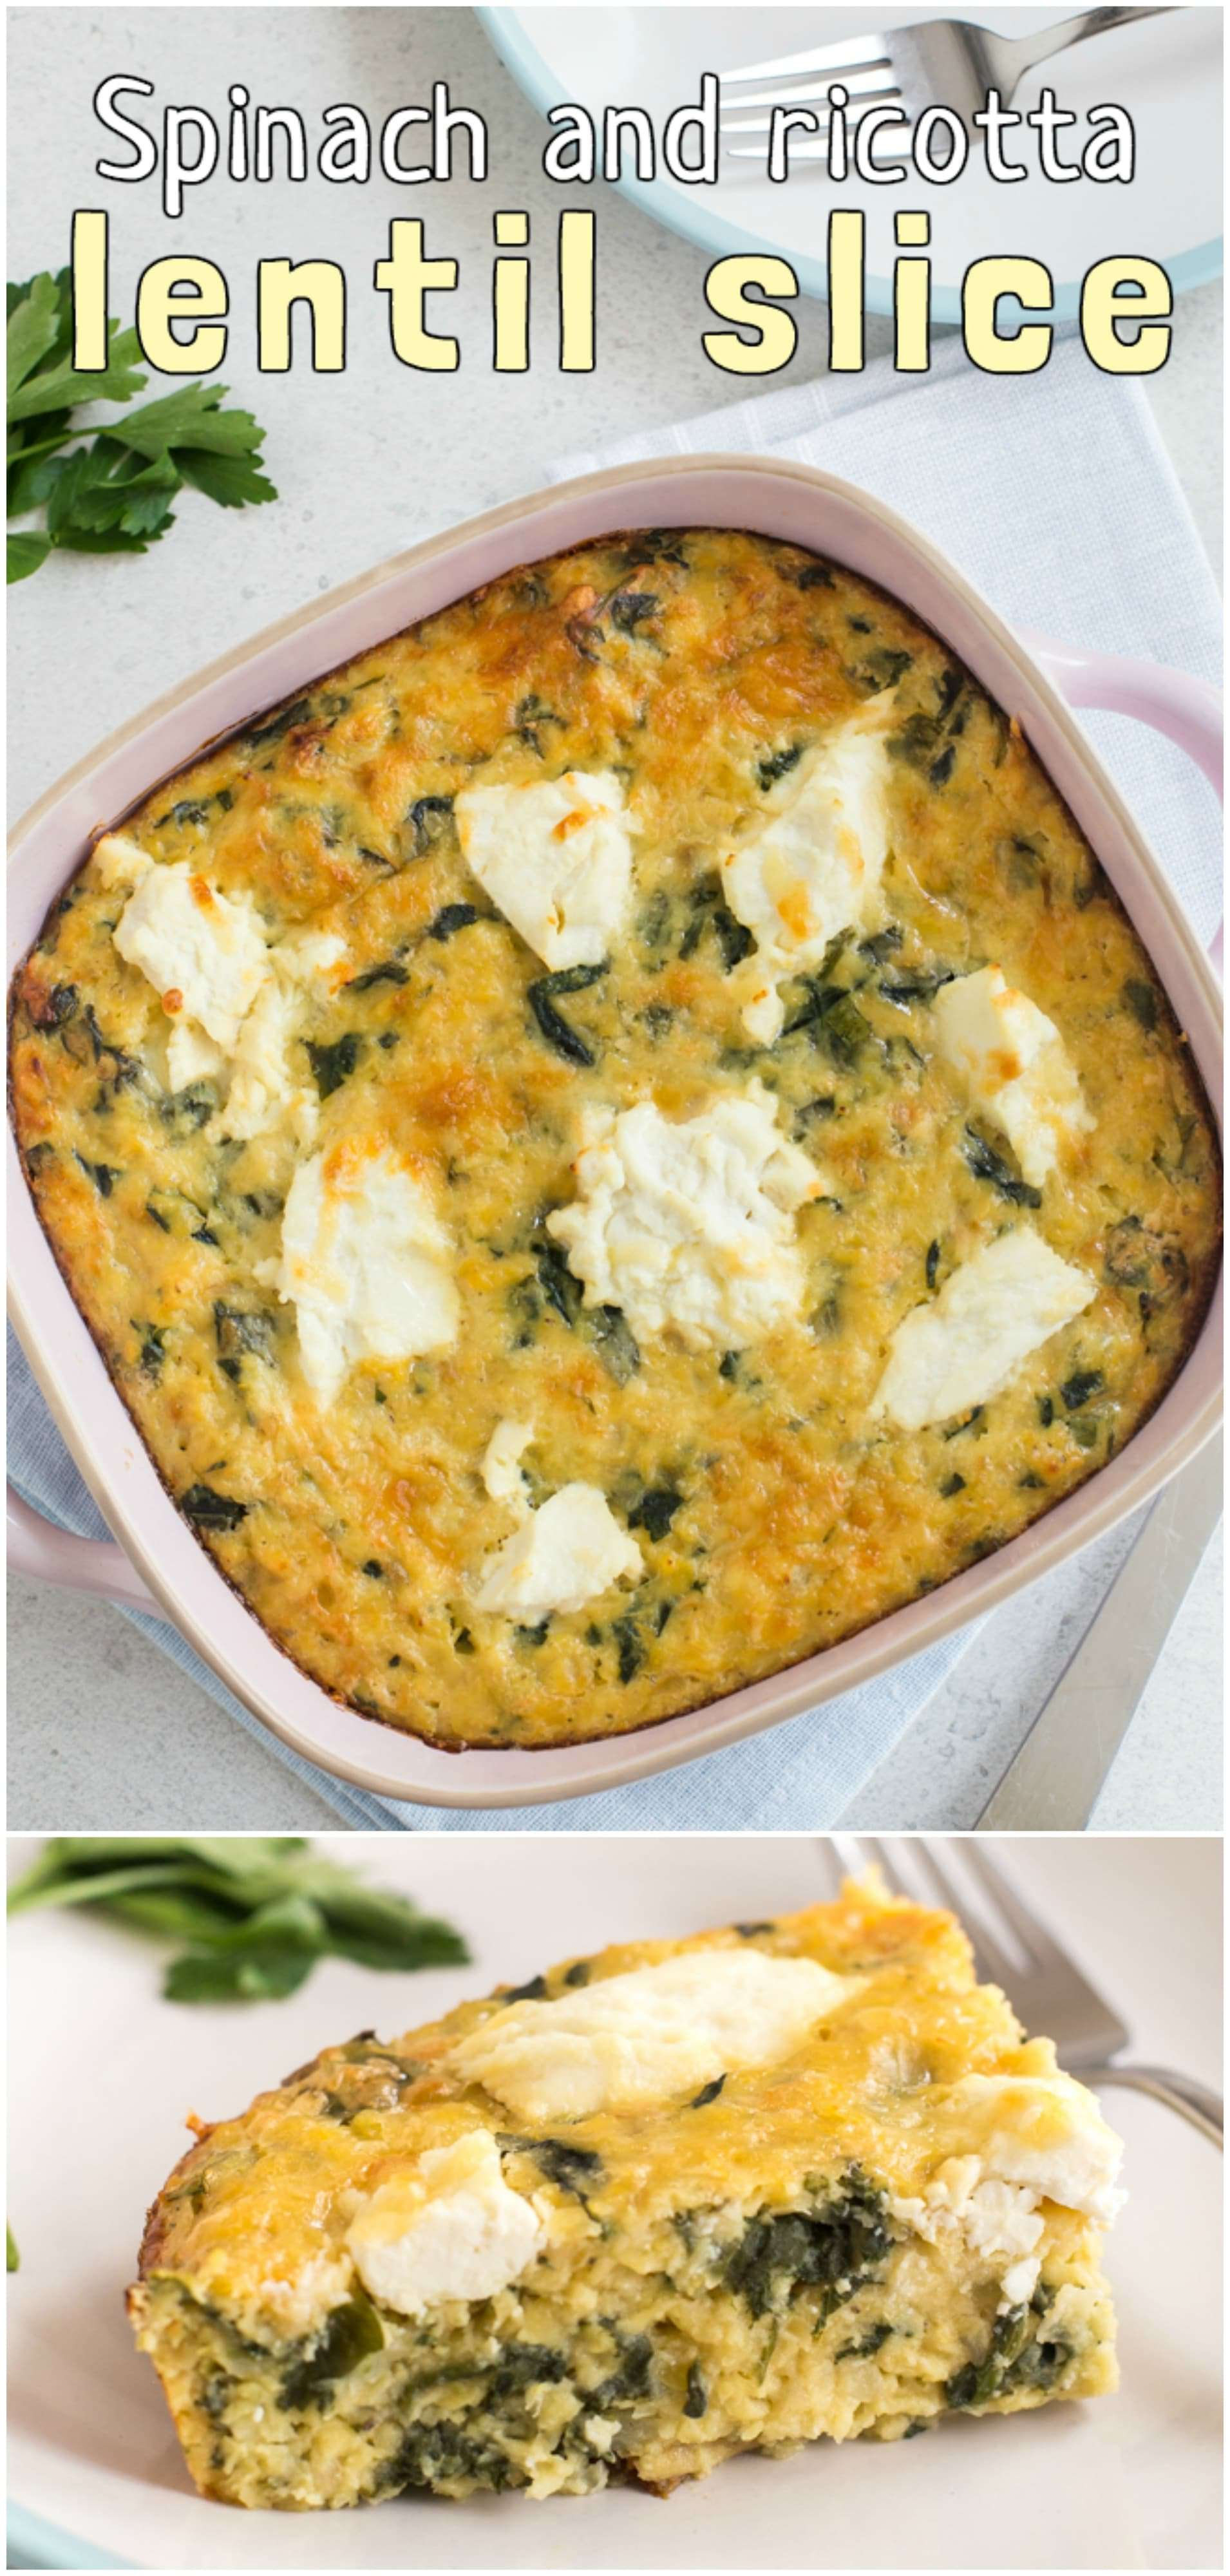 Spinach and ricotta lentil slice - perfect served hot for dinner or cold in lunch boxes! A fluffy yet hearty cheesy lentil slice with garlicky spinach, topped with pockets of creamy ricotta! Heaven. #lentilbake #lentilslice #vegetariandinner #healthyvegetarian #spinachricotta #vegetariancasserole